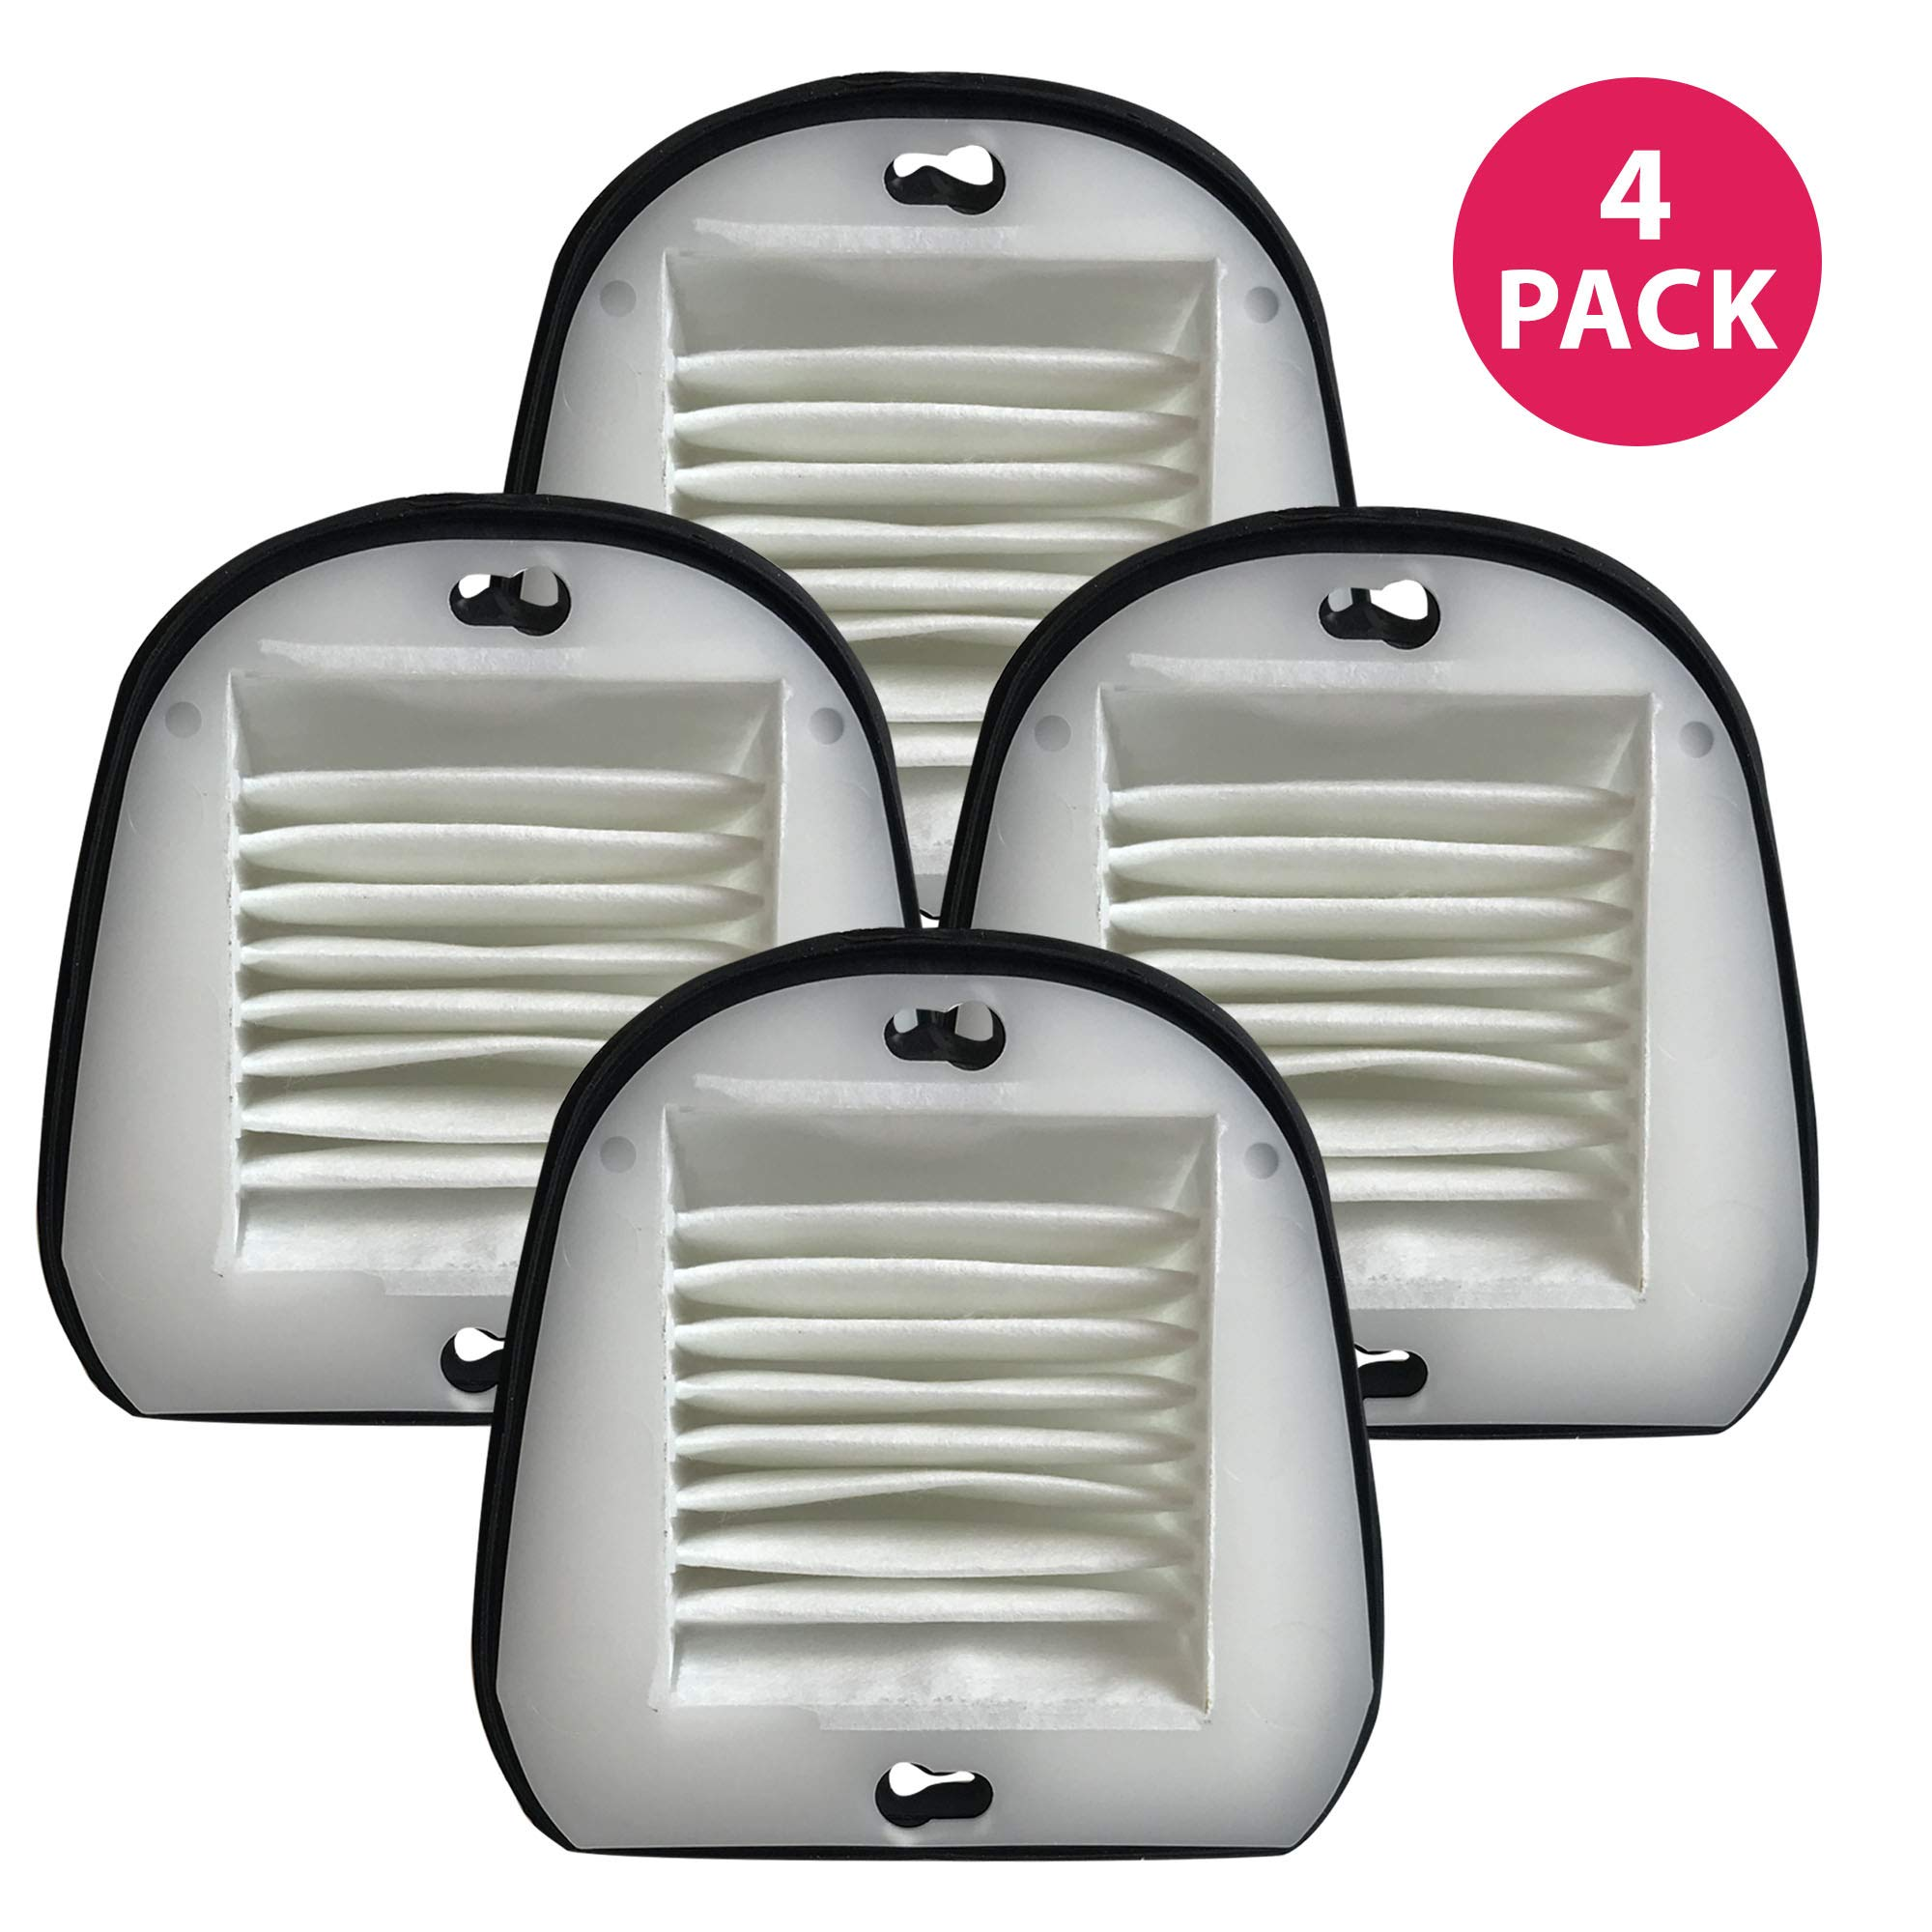 Crucial Vacuum Air Filter Replacement - Compatible with Black & Decker Part # 48G7, 2031473 203-1473 and Black & Decker VF20 Filter Fits Dustbuster - Washable, Reusable, Lightweight Filters (4 Pack)